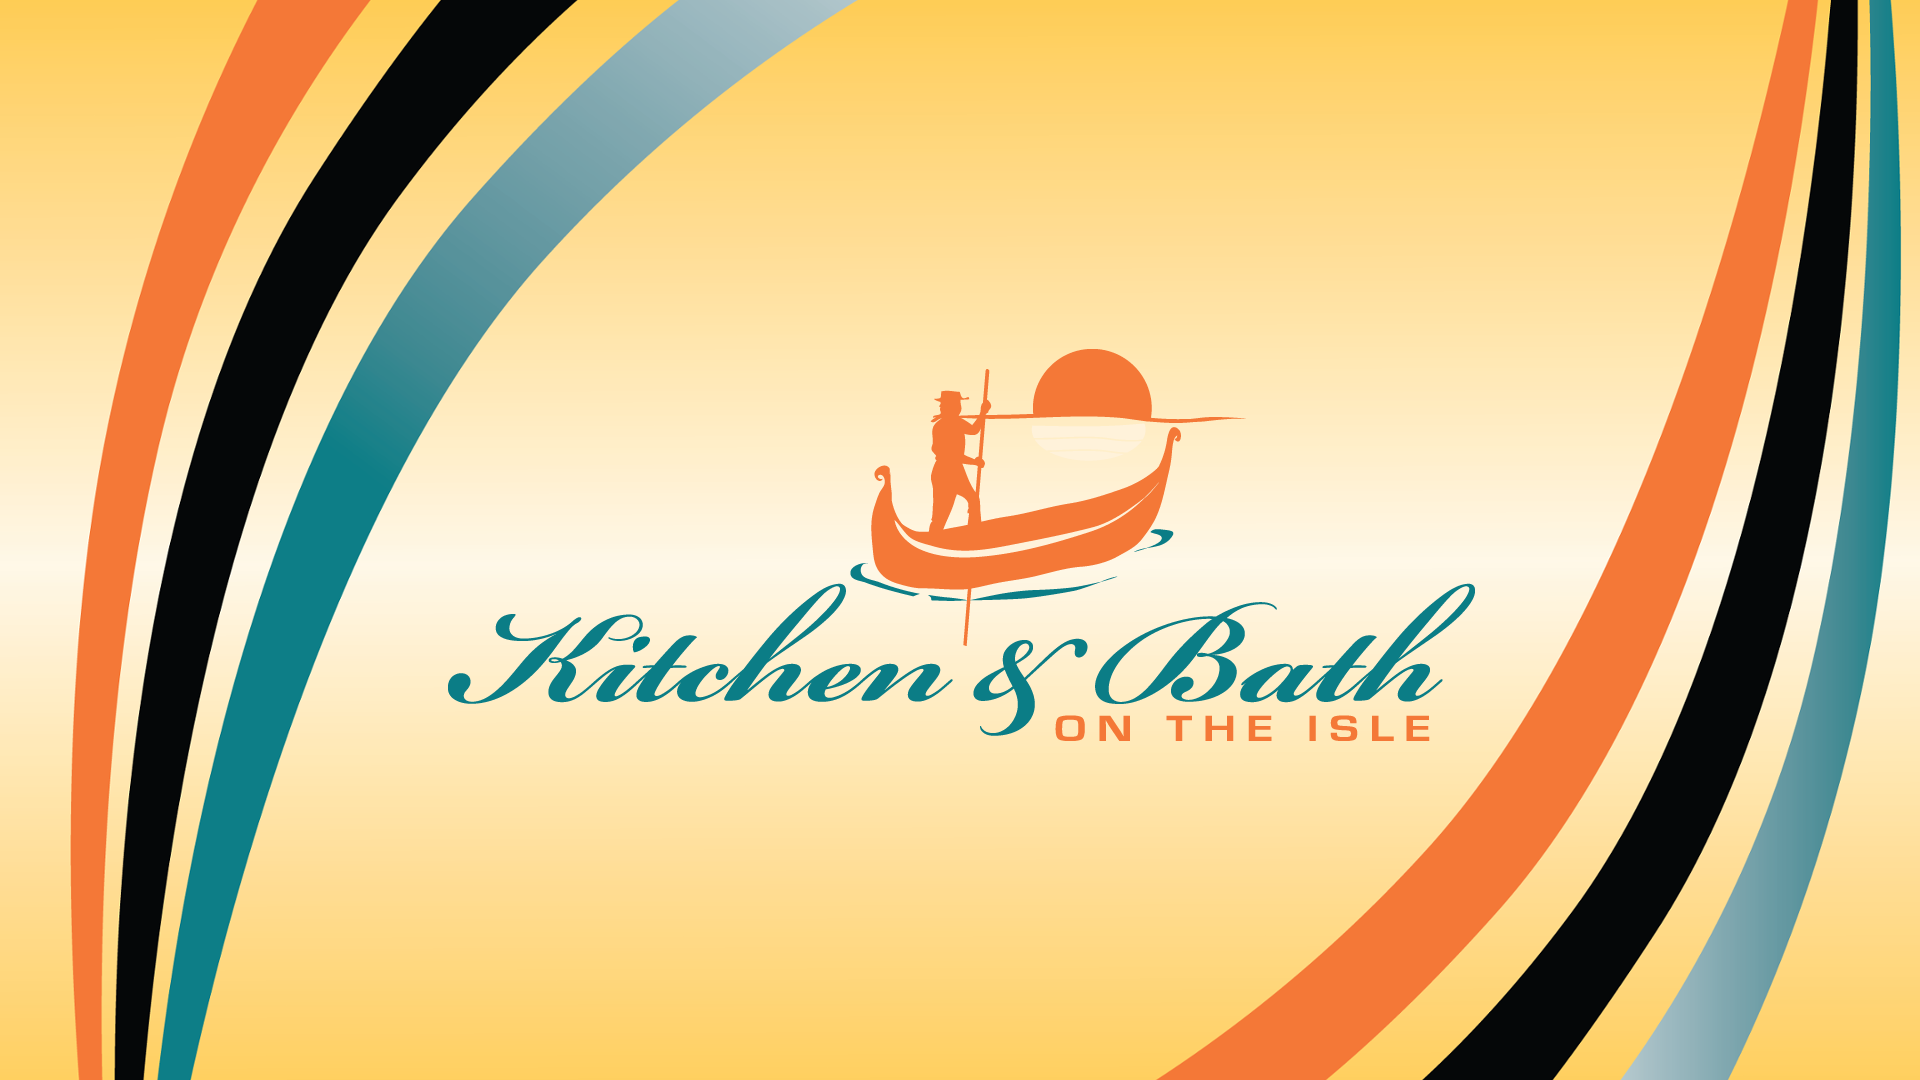 Bathroom Remodeling Venice Florida kitchen and bath on the islekitchen and bath on the isle